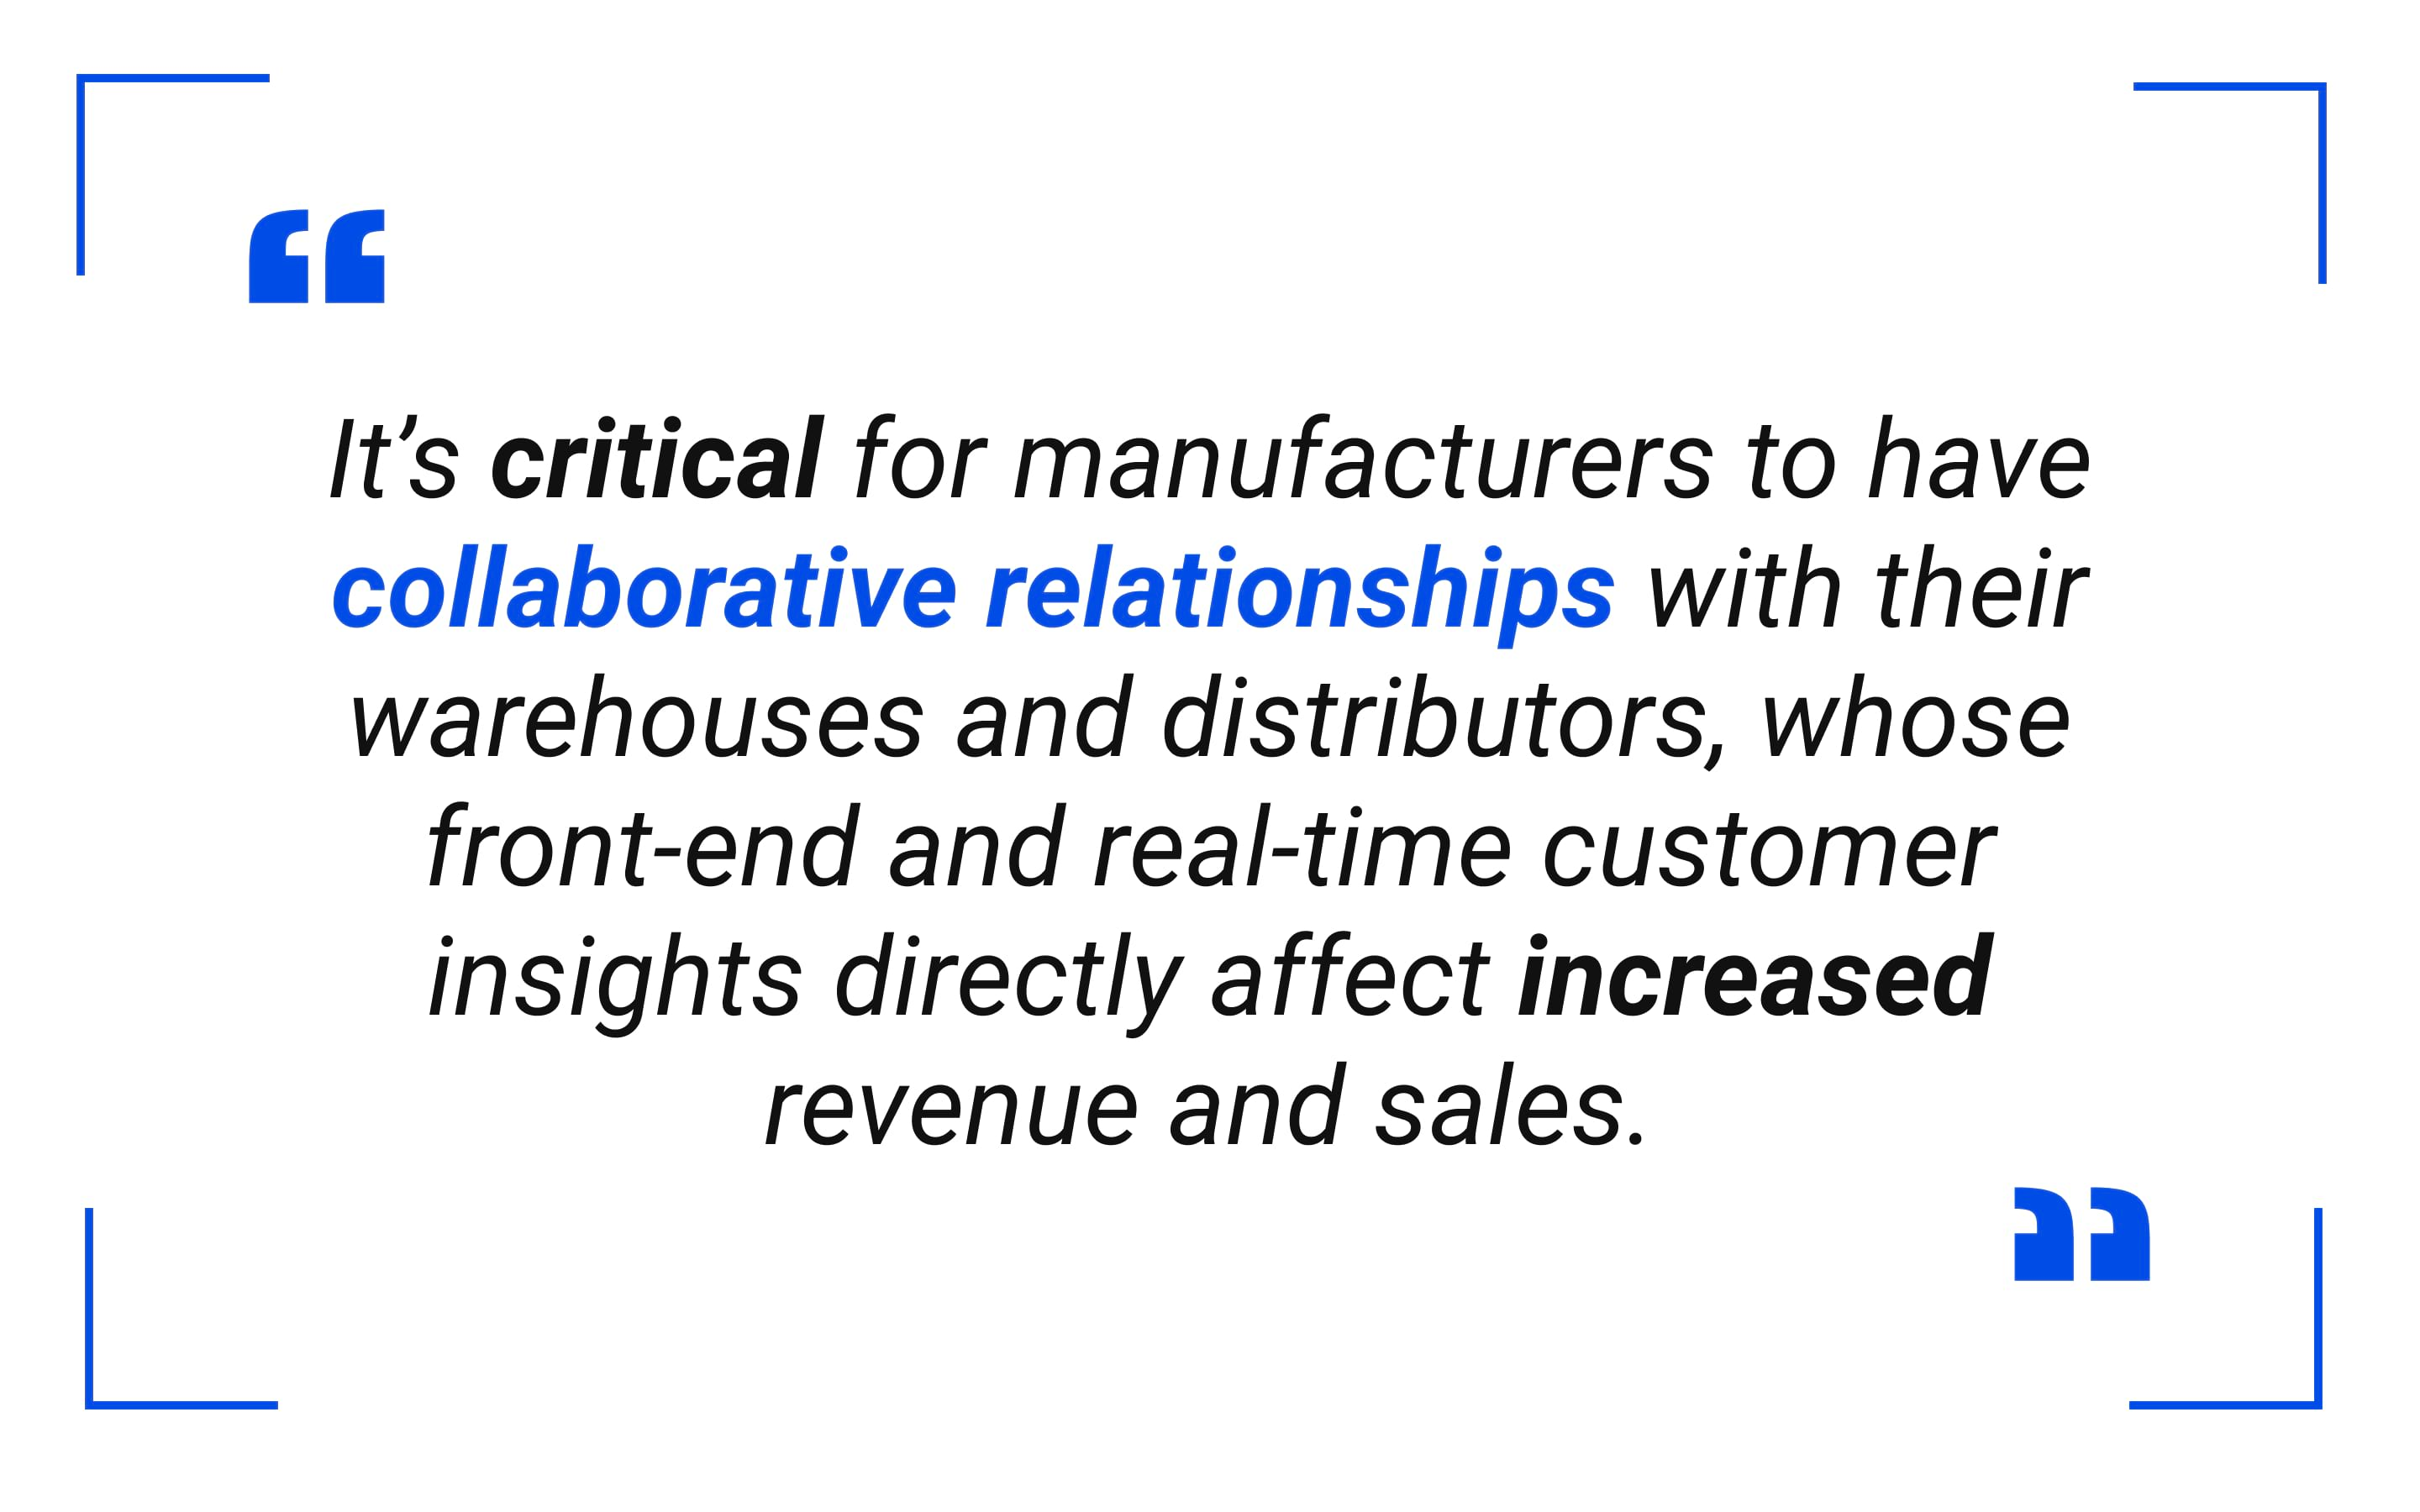 It's critical for manufacturers to have collaborative relationships with their warehouses and distributors